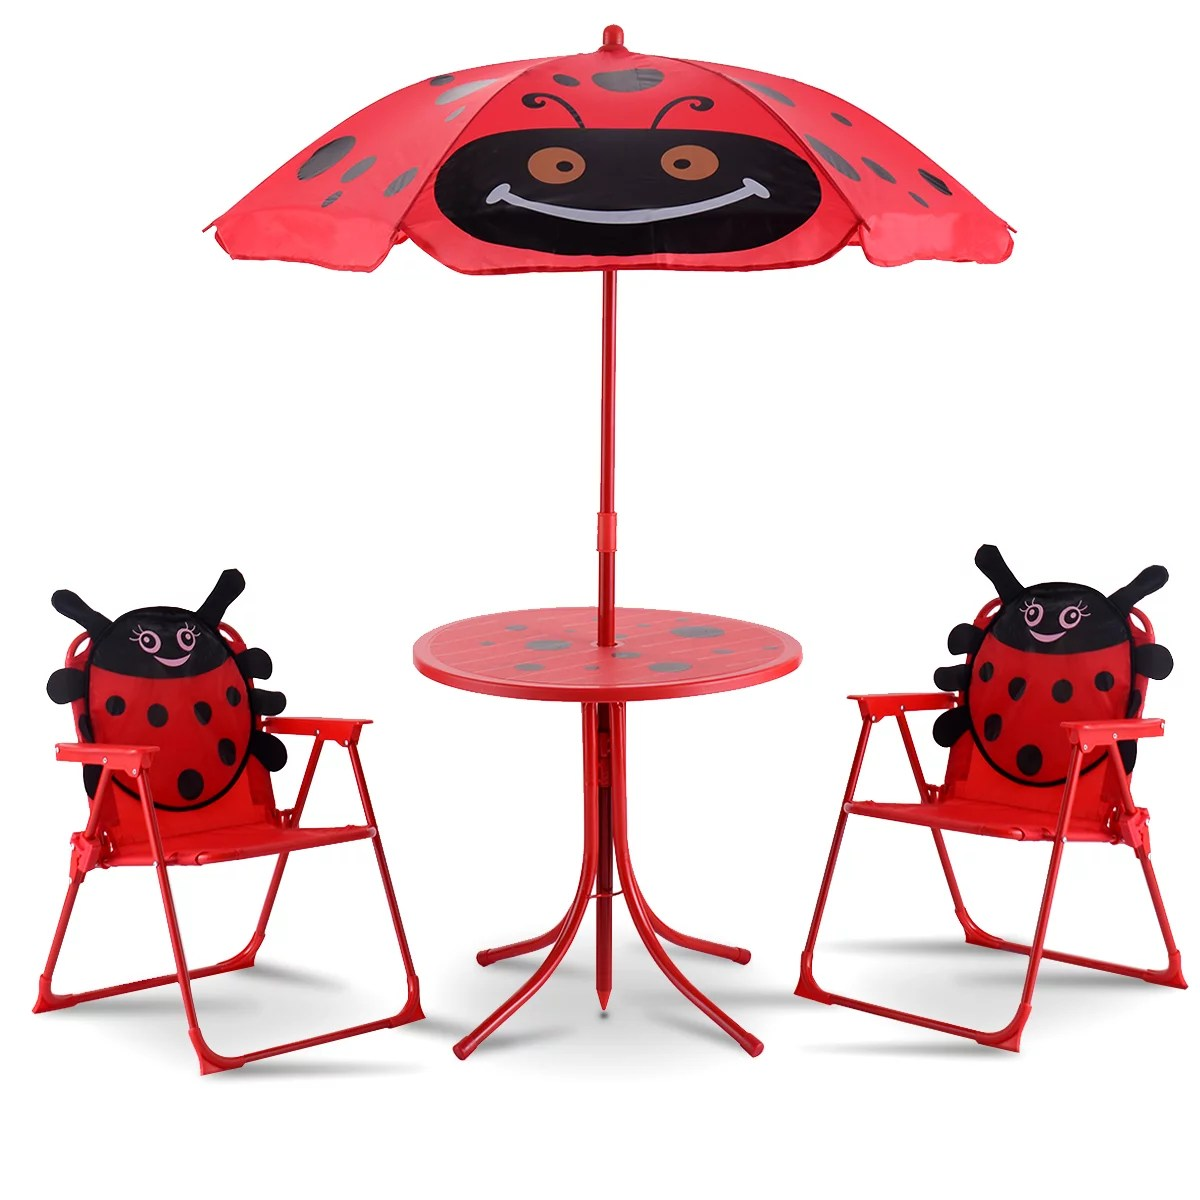 kids outdoor chair office reupholstery kid s furniture walmart com product image costway patio set table and 2 folding chairs w umbrella beetle garden yard